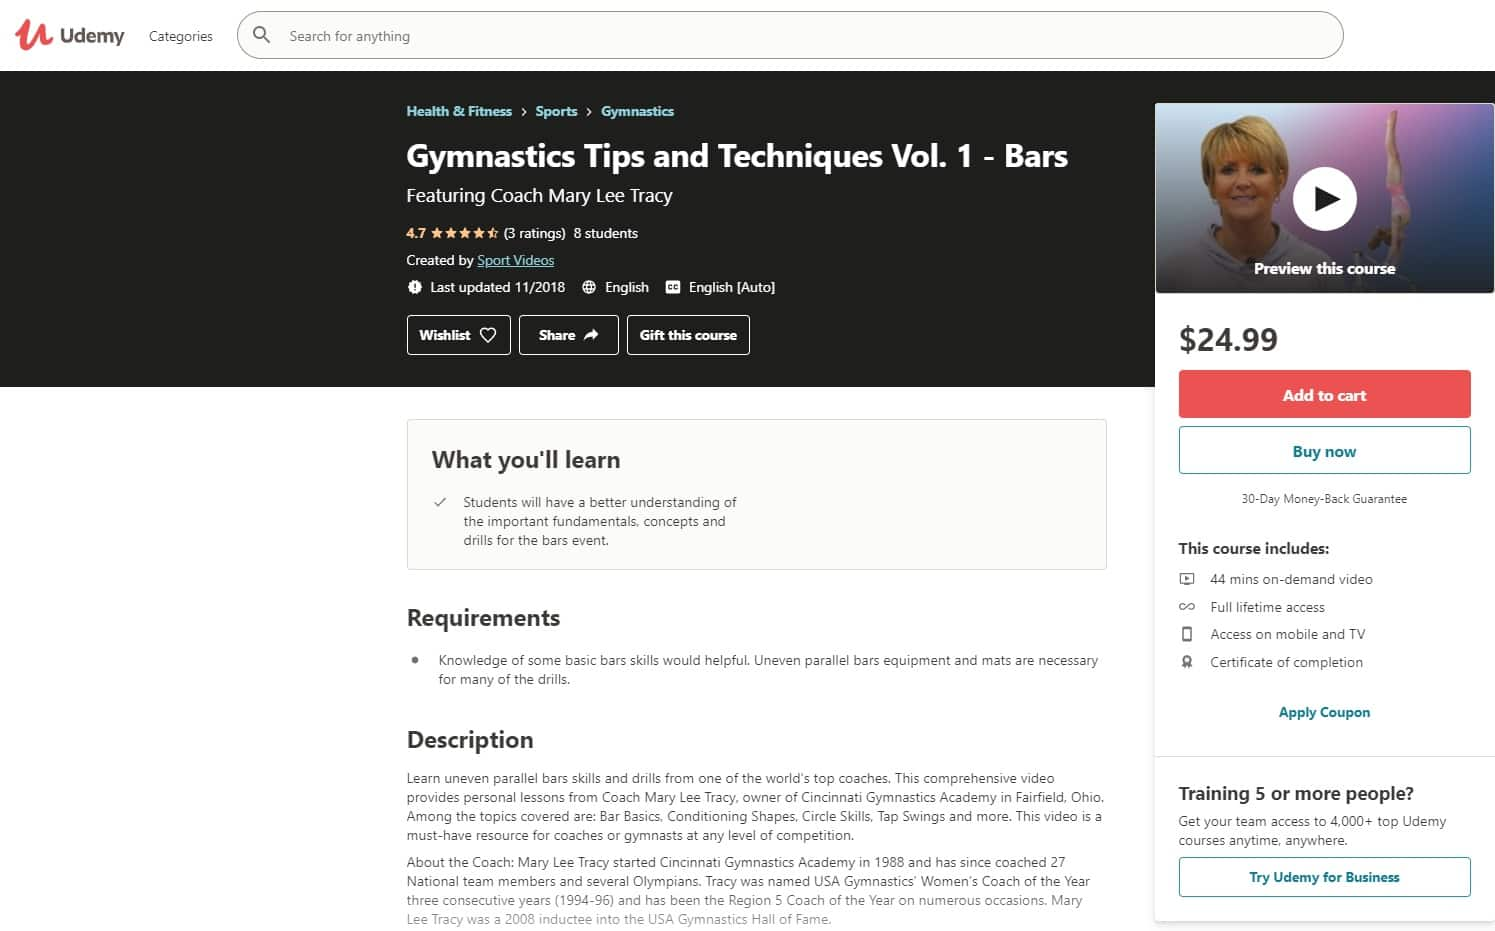 Udemy 2 Gymnastics Lessons for Beginners